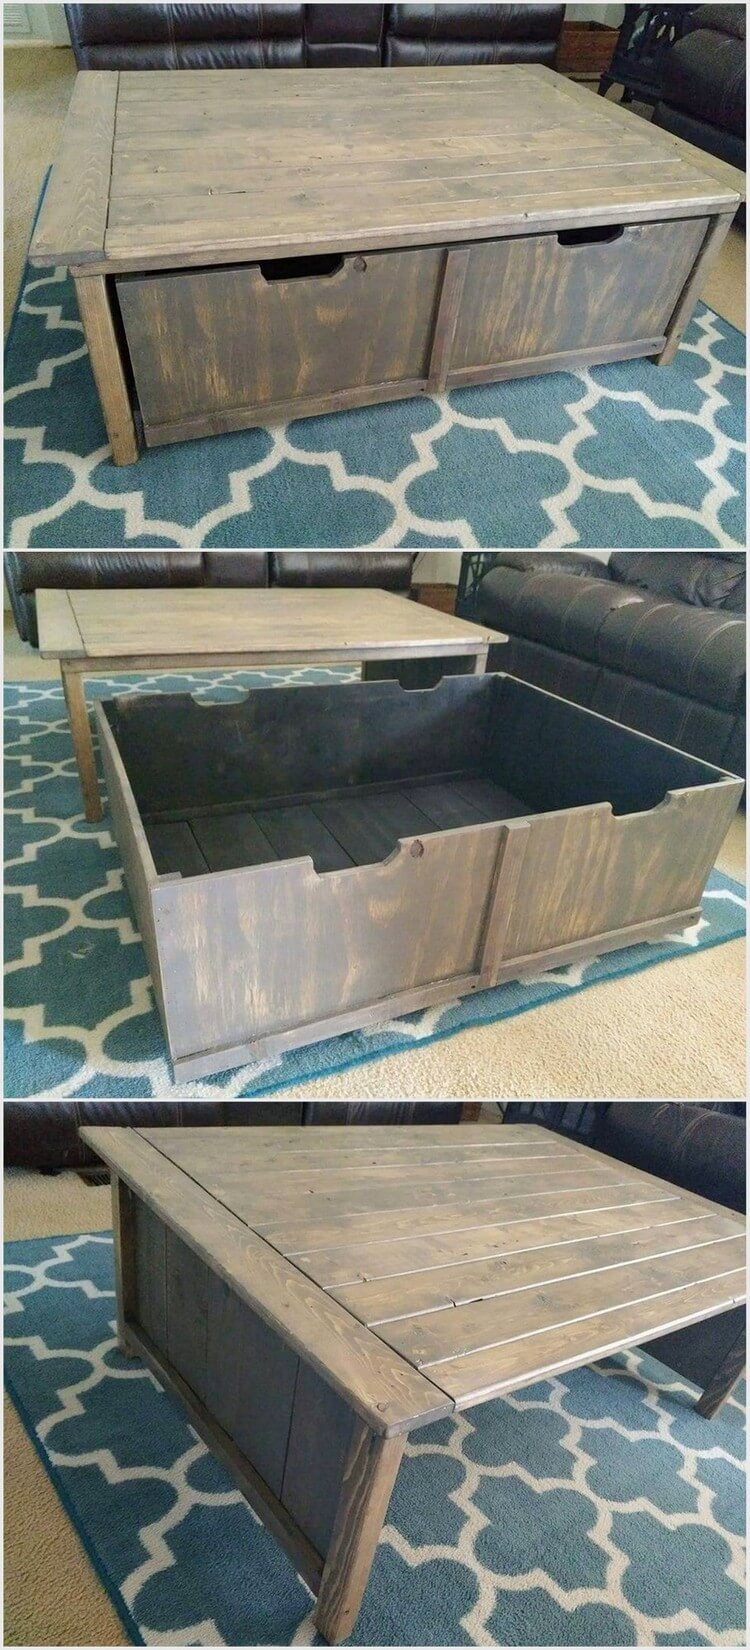 Pallet Table with Storage Box